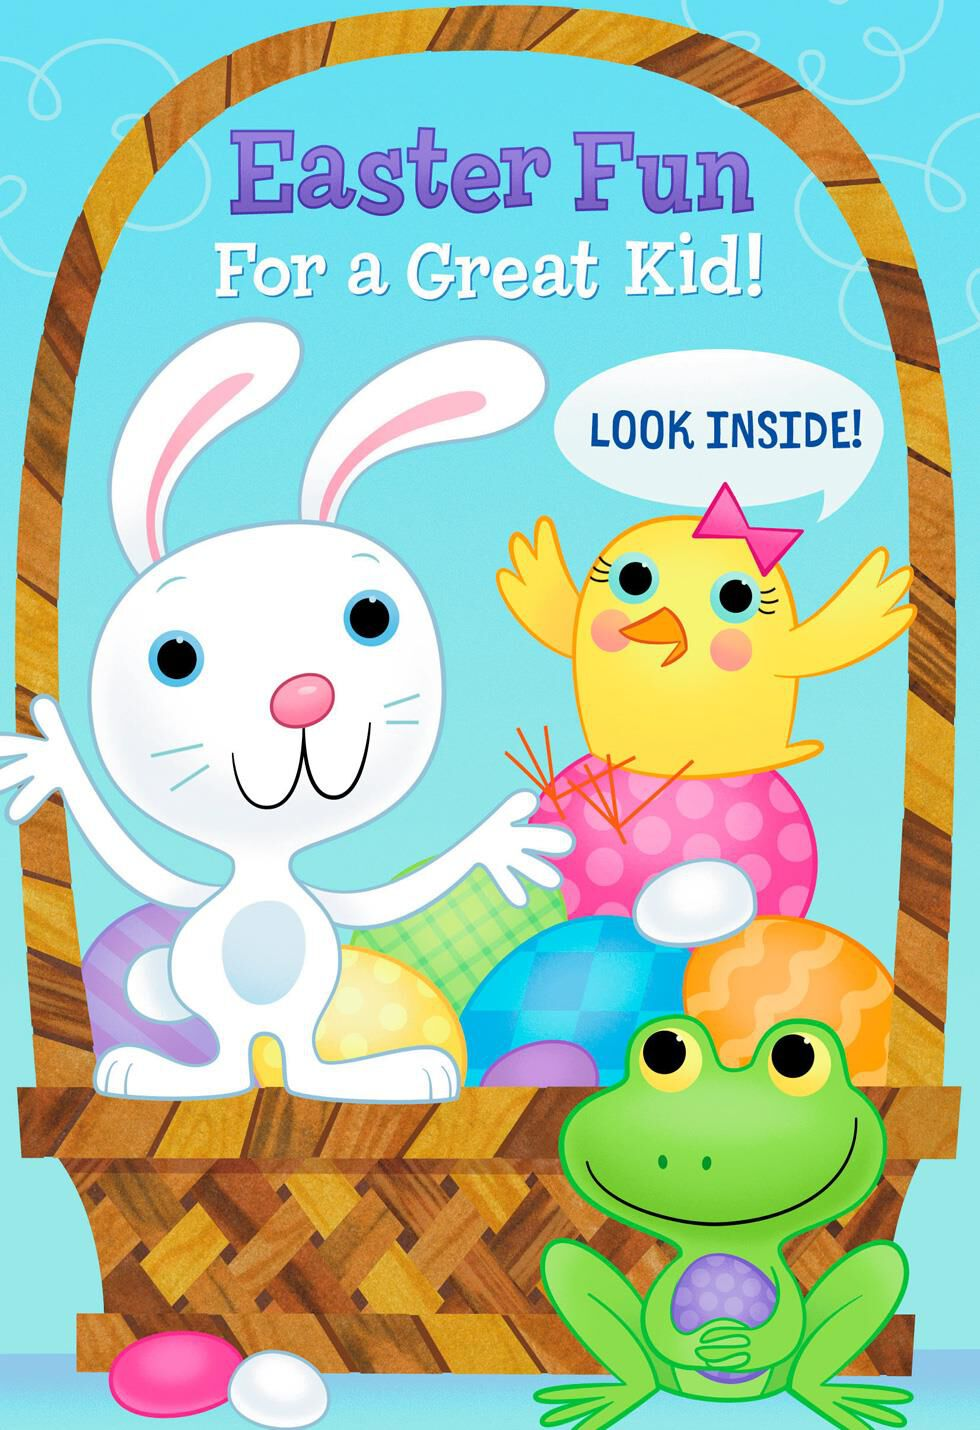 Fun and Games Kid\'s Activities Easter Card - Greeting Cards - Hallmark